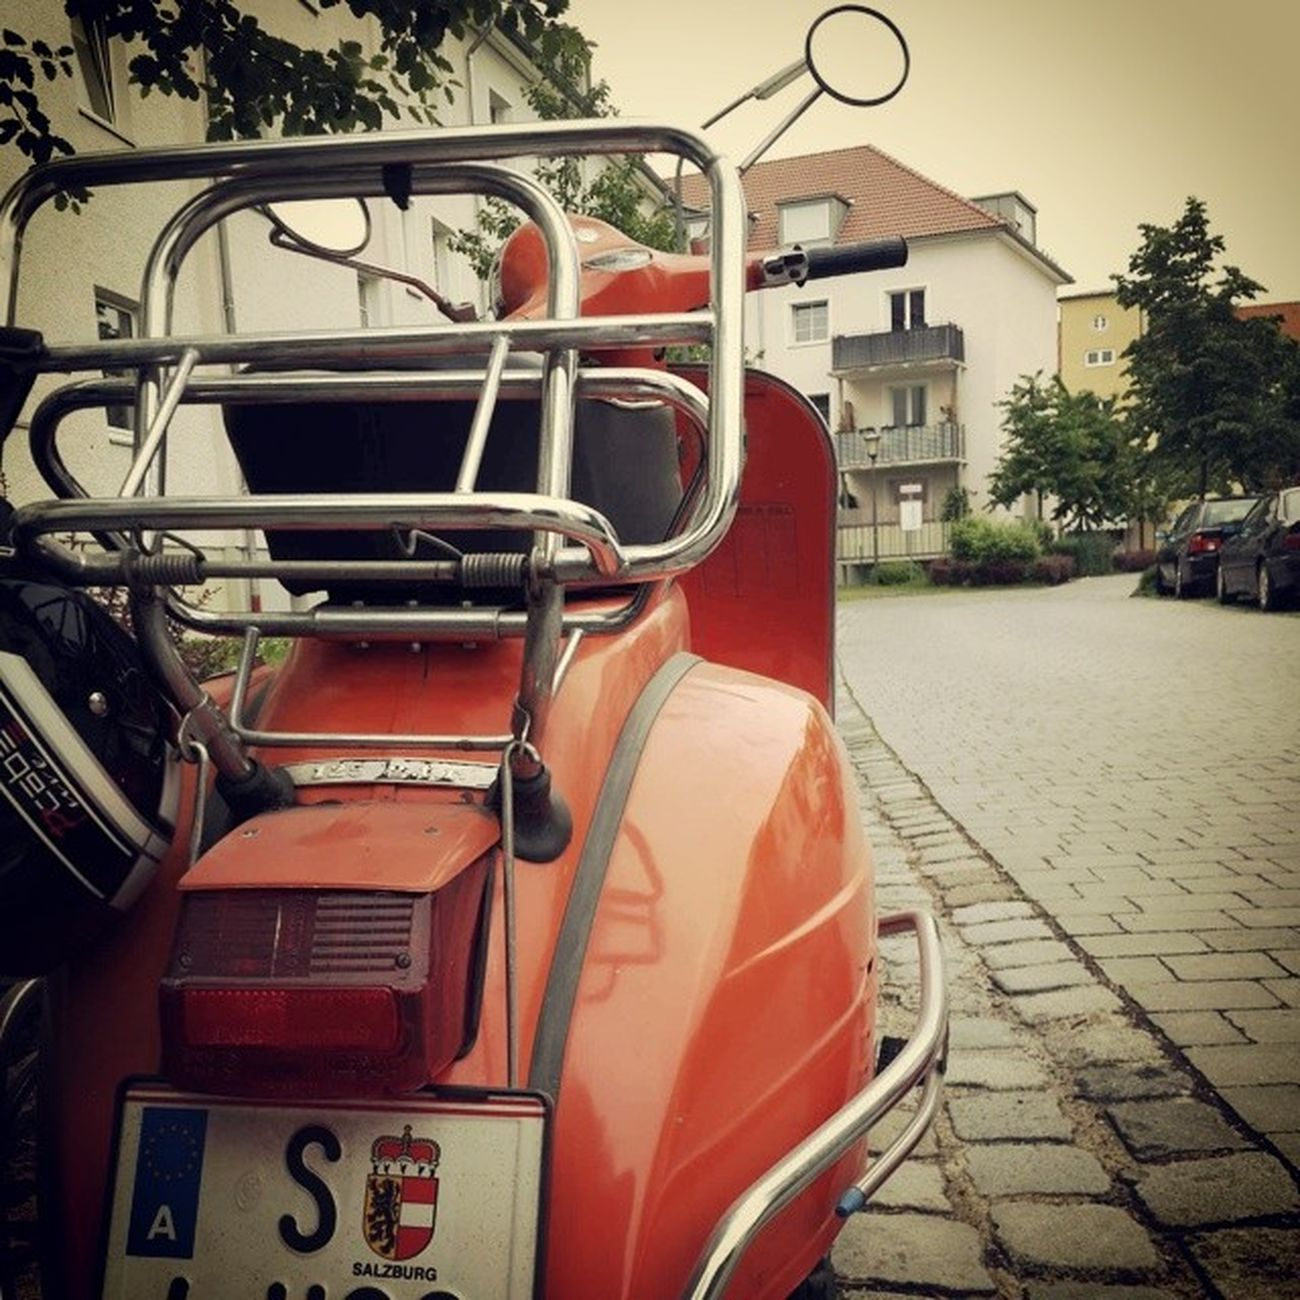 Off to Salzburg with Luise. Vespa Piaggio 125gtr